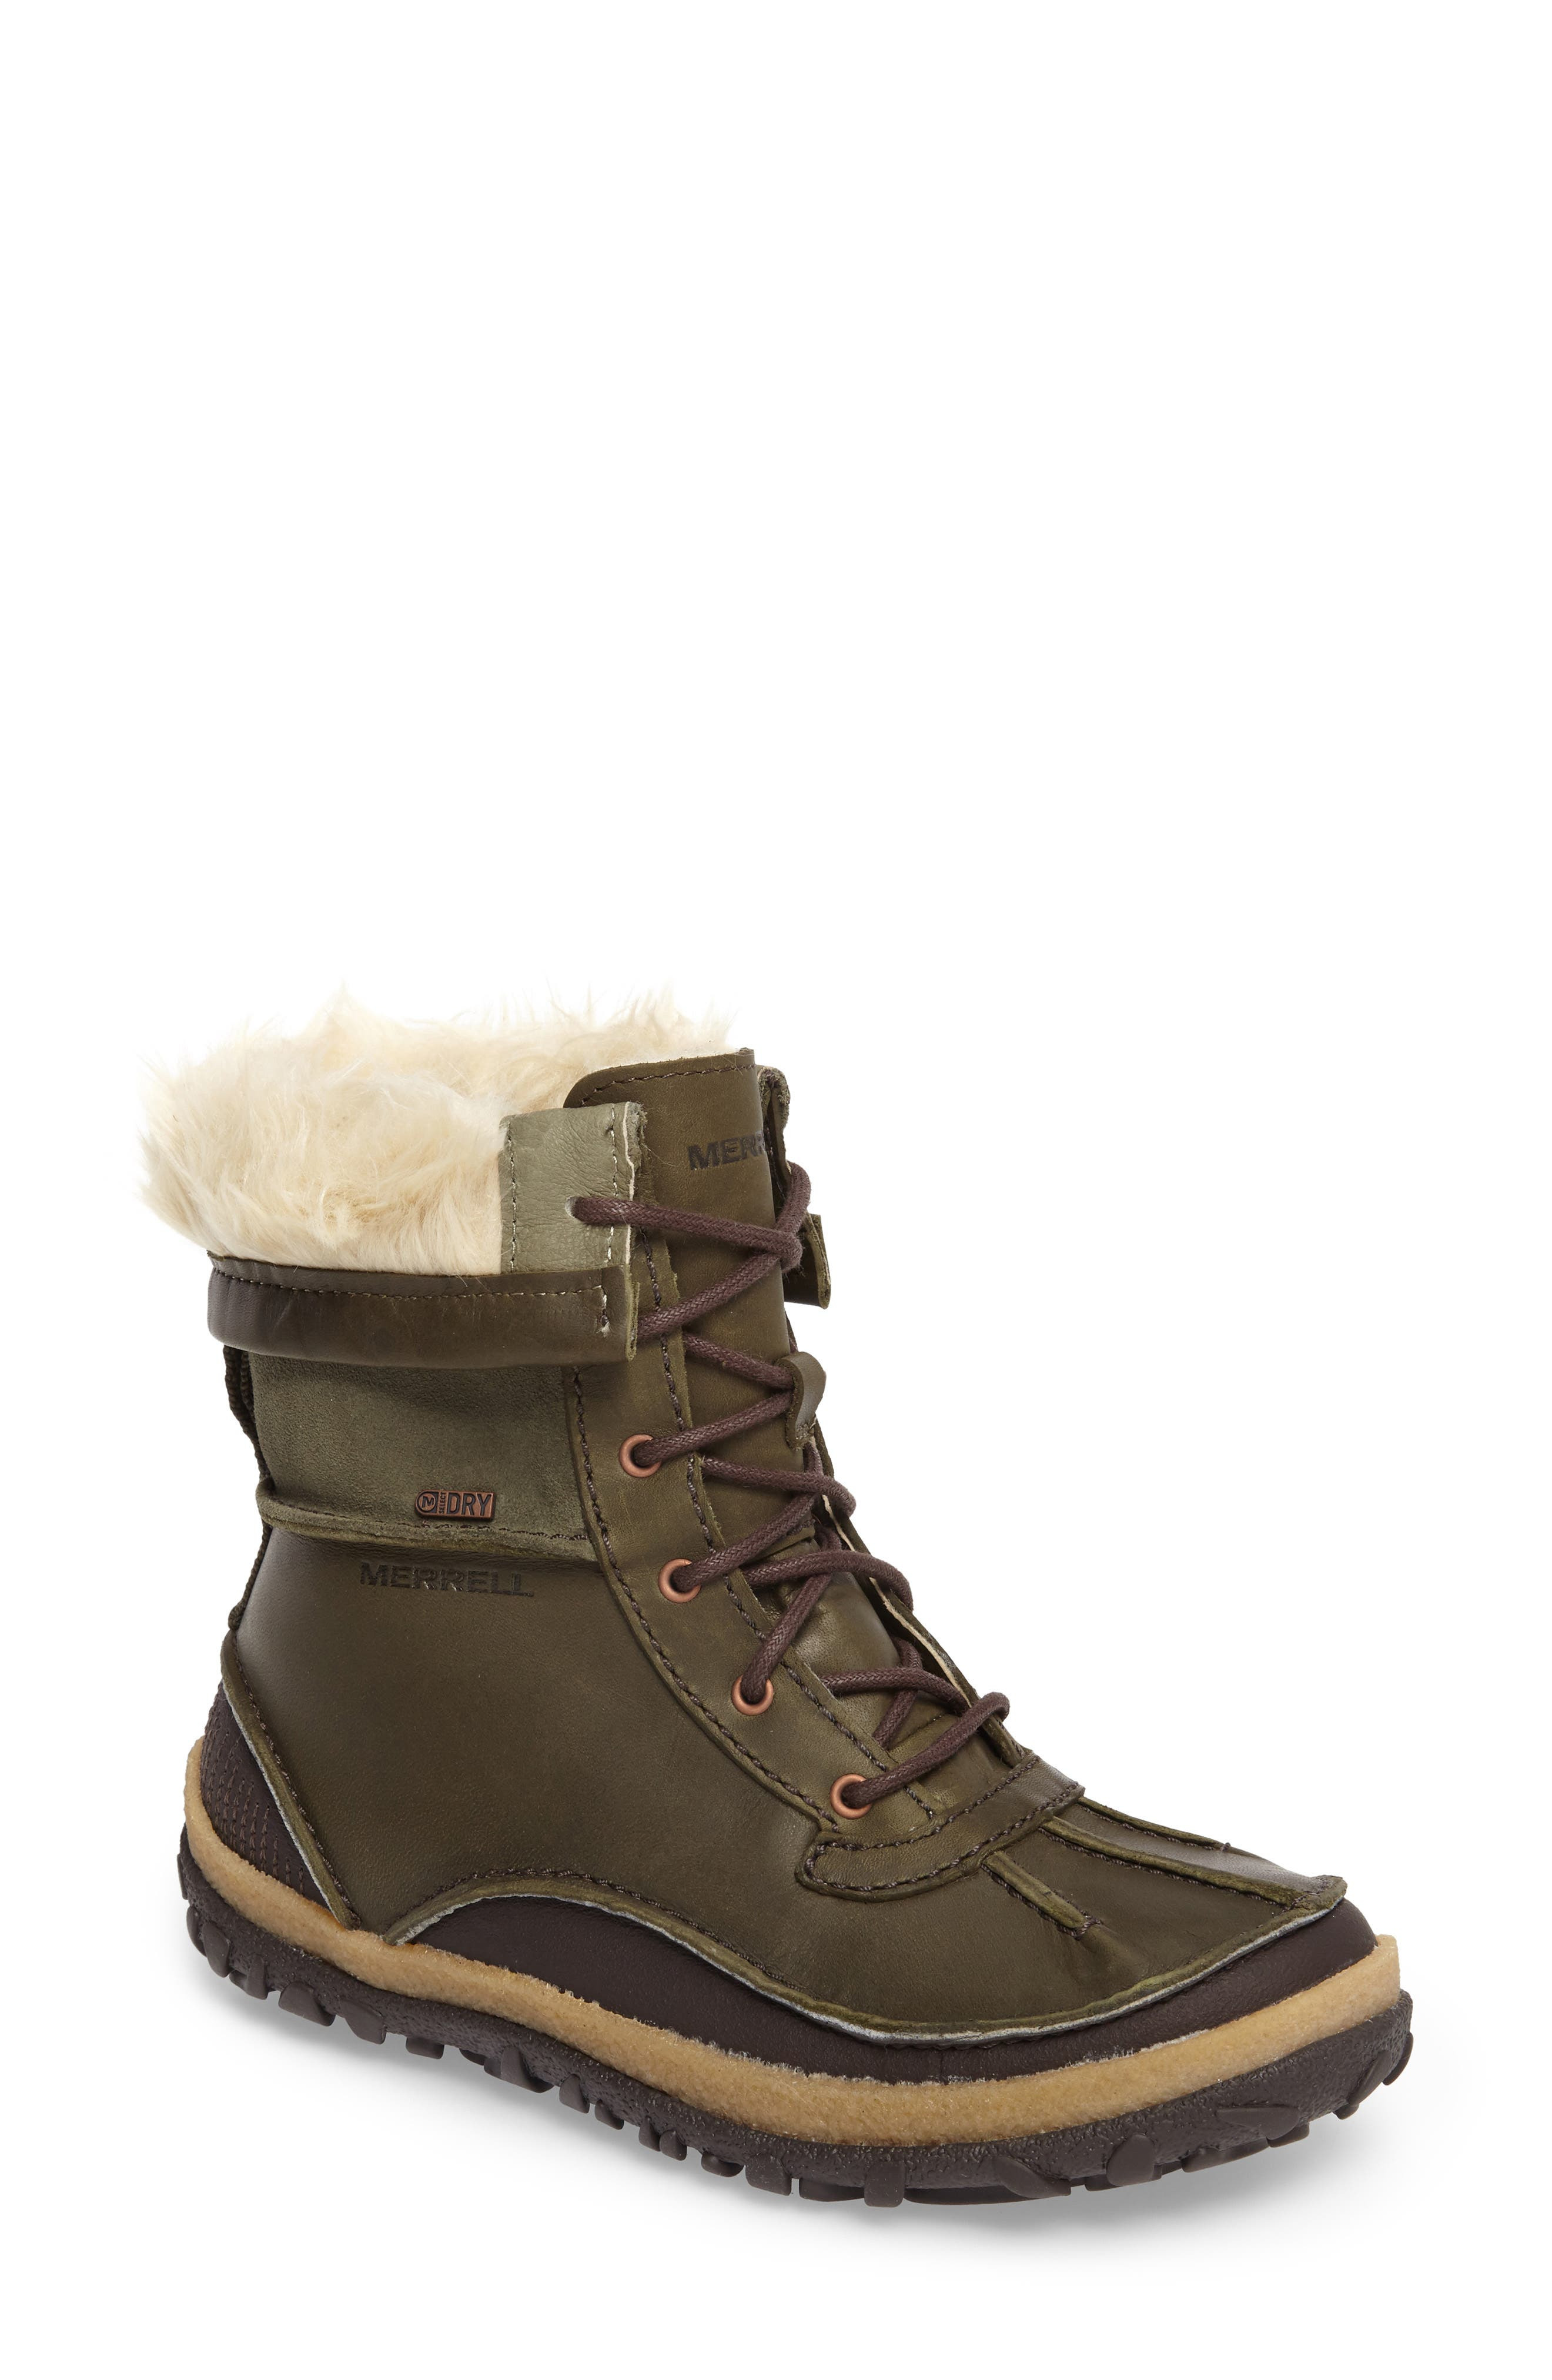 Tremblant Insulated Waterproof Boot,                             Main thumbnail 4, color,